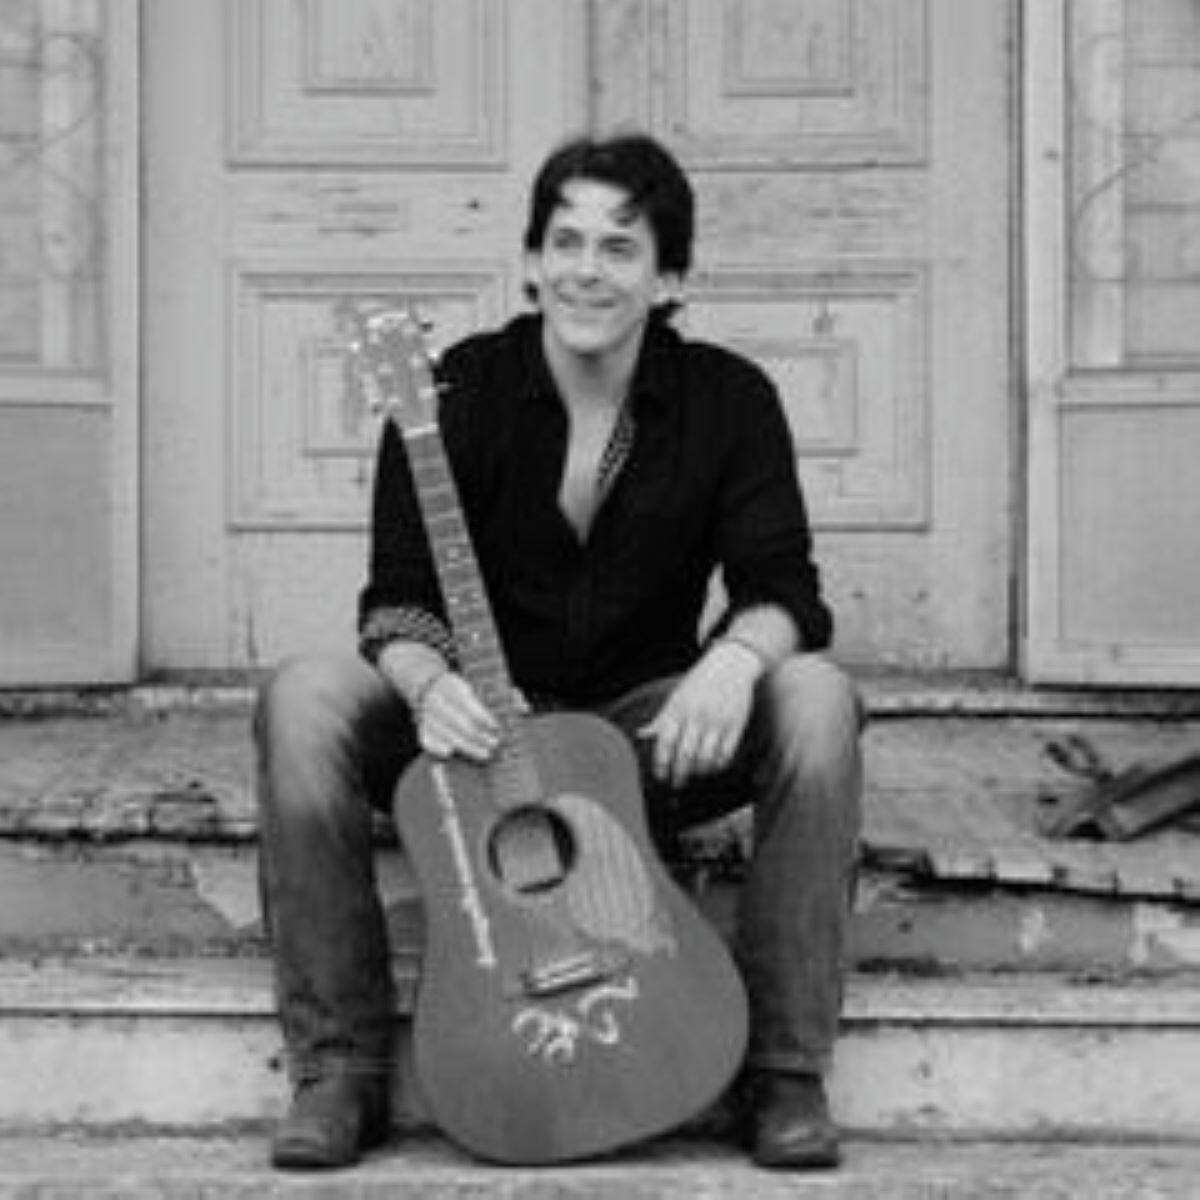 Connecticut native Doug Allen will be among the musical performers at